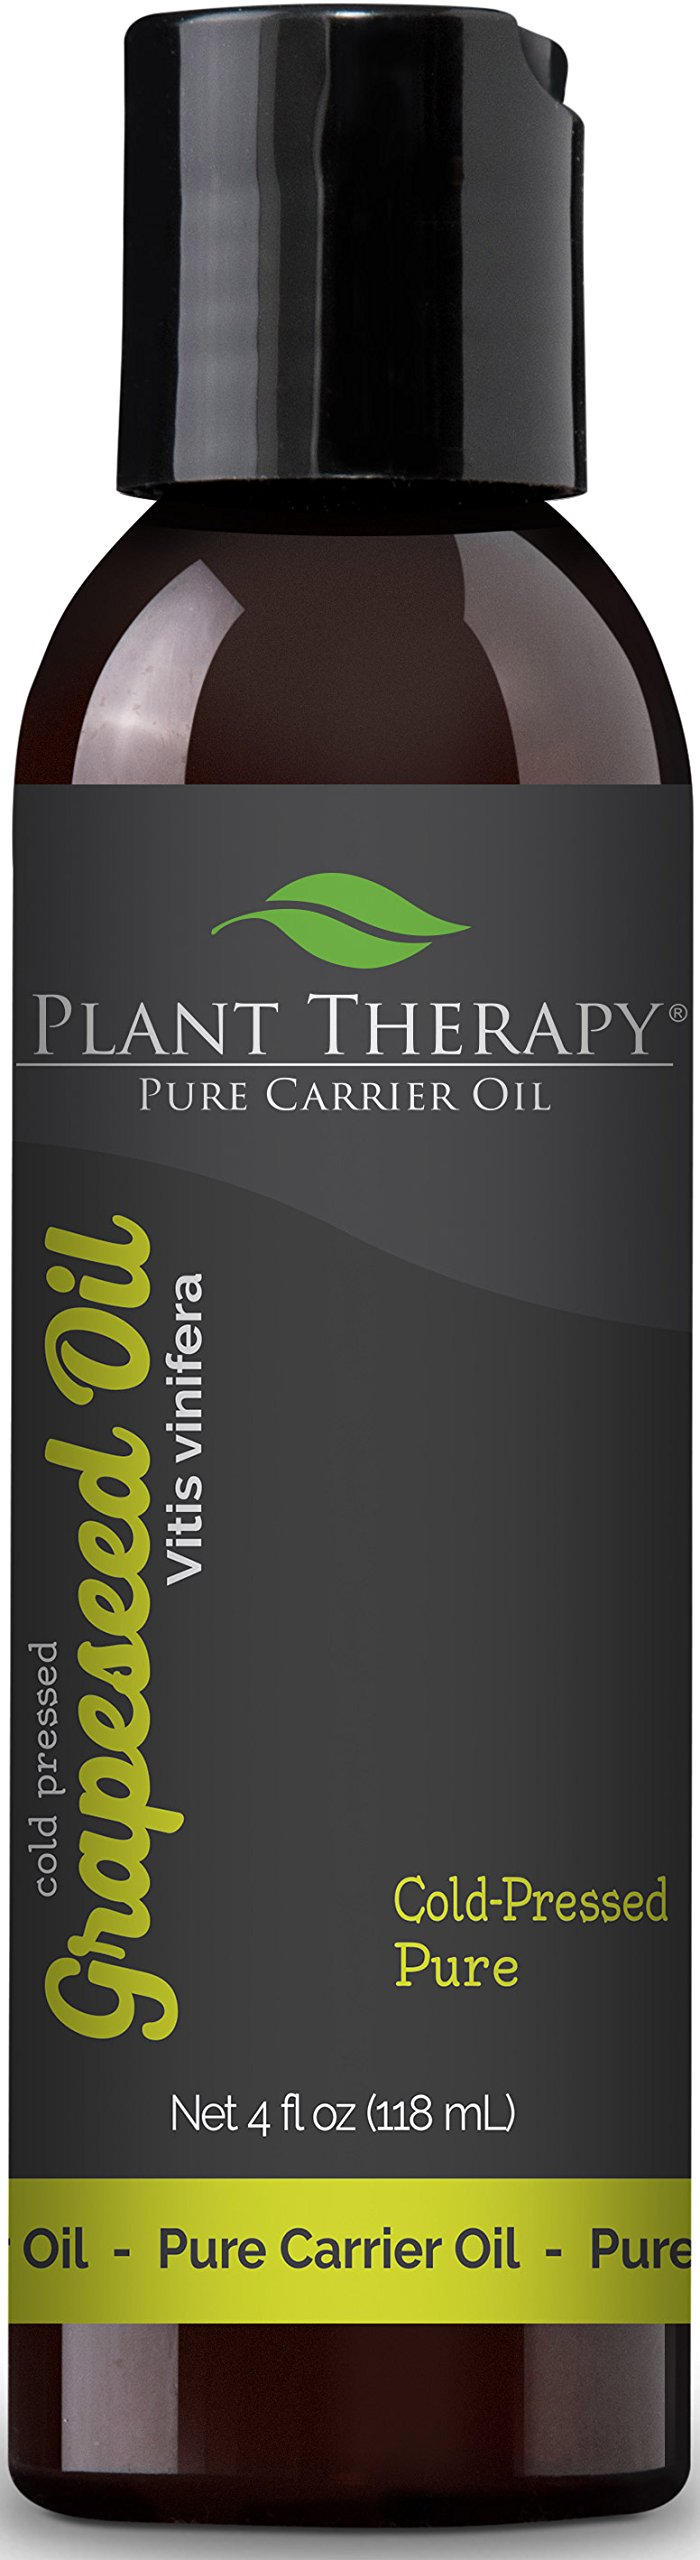 Plant Therapy Grapeseed Carrier Oil. A Base Oil for Aromatherapy, Essential Oil or Massage use. 4 oz.